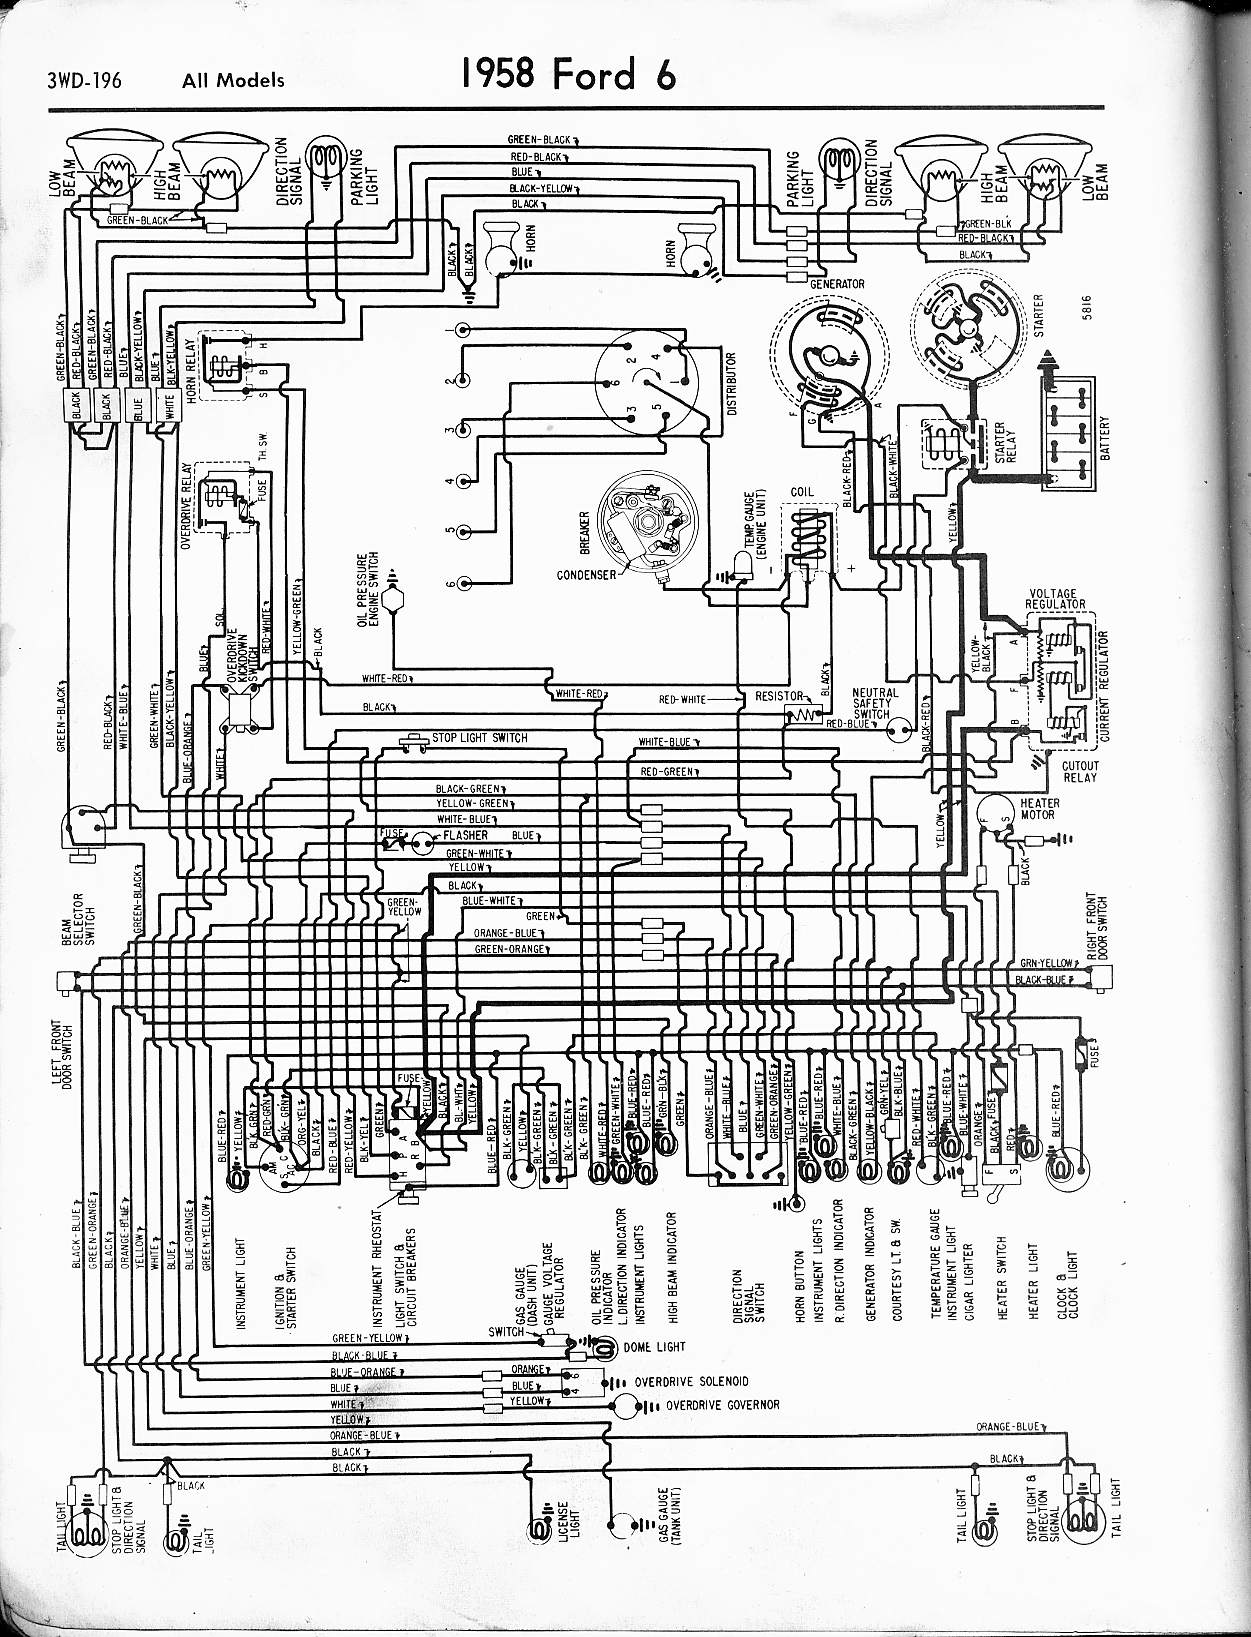 wiring diagrams ford the wiring diagram 57 65 ford wiring diagrams wiring diagram